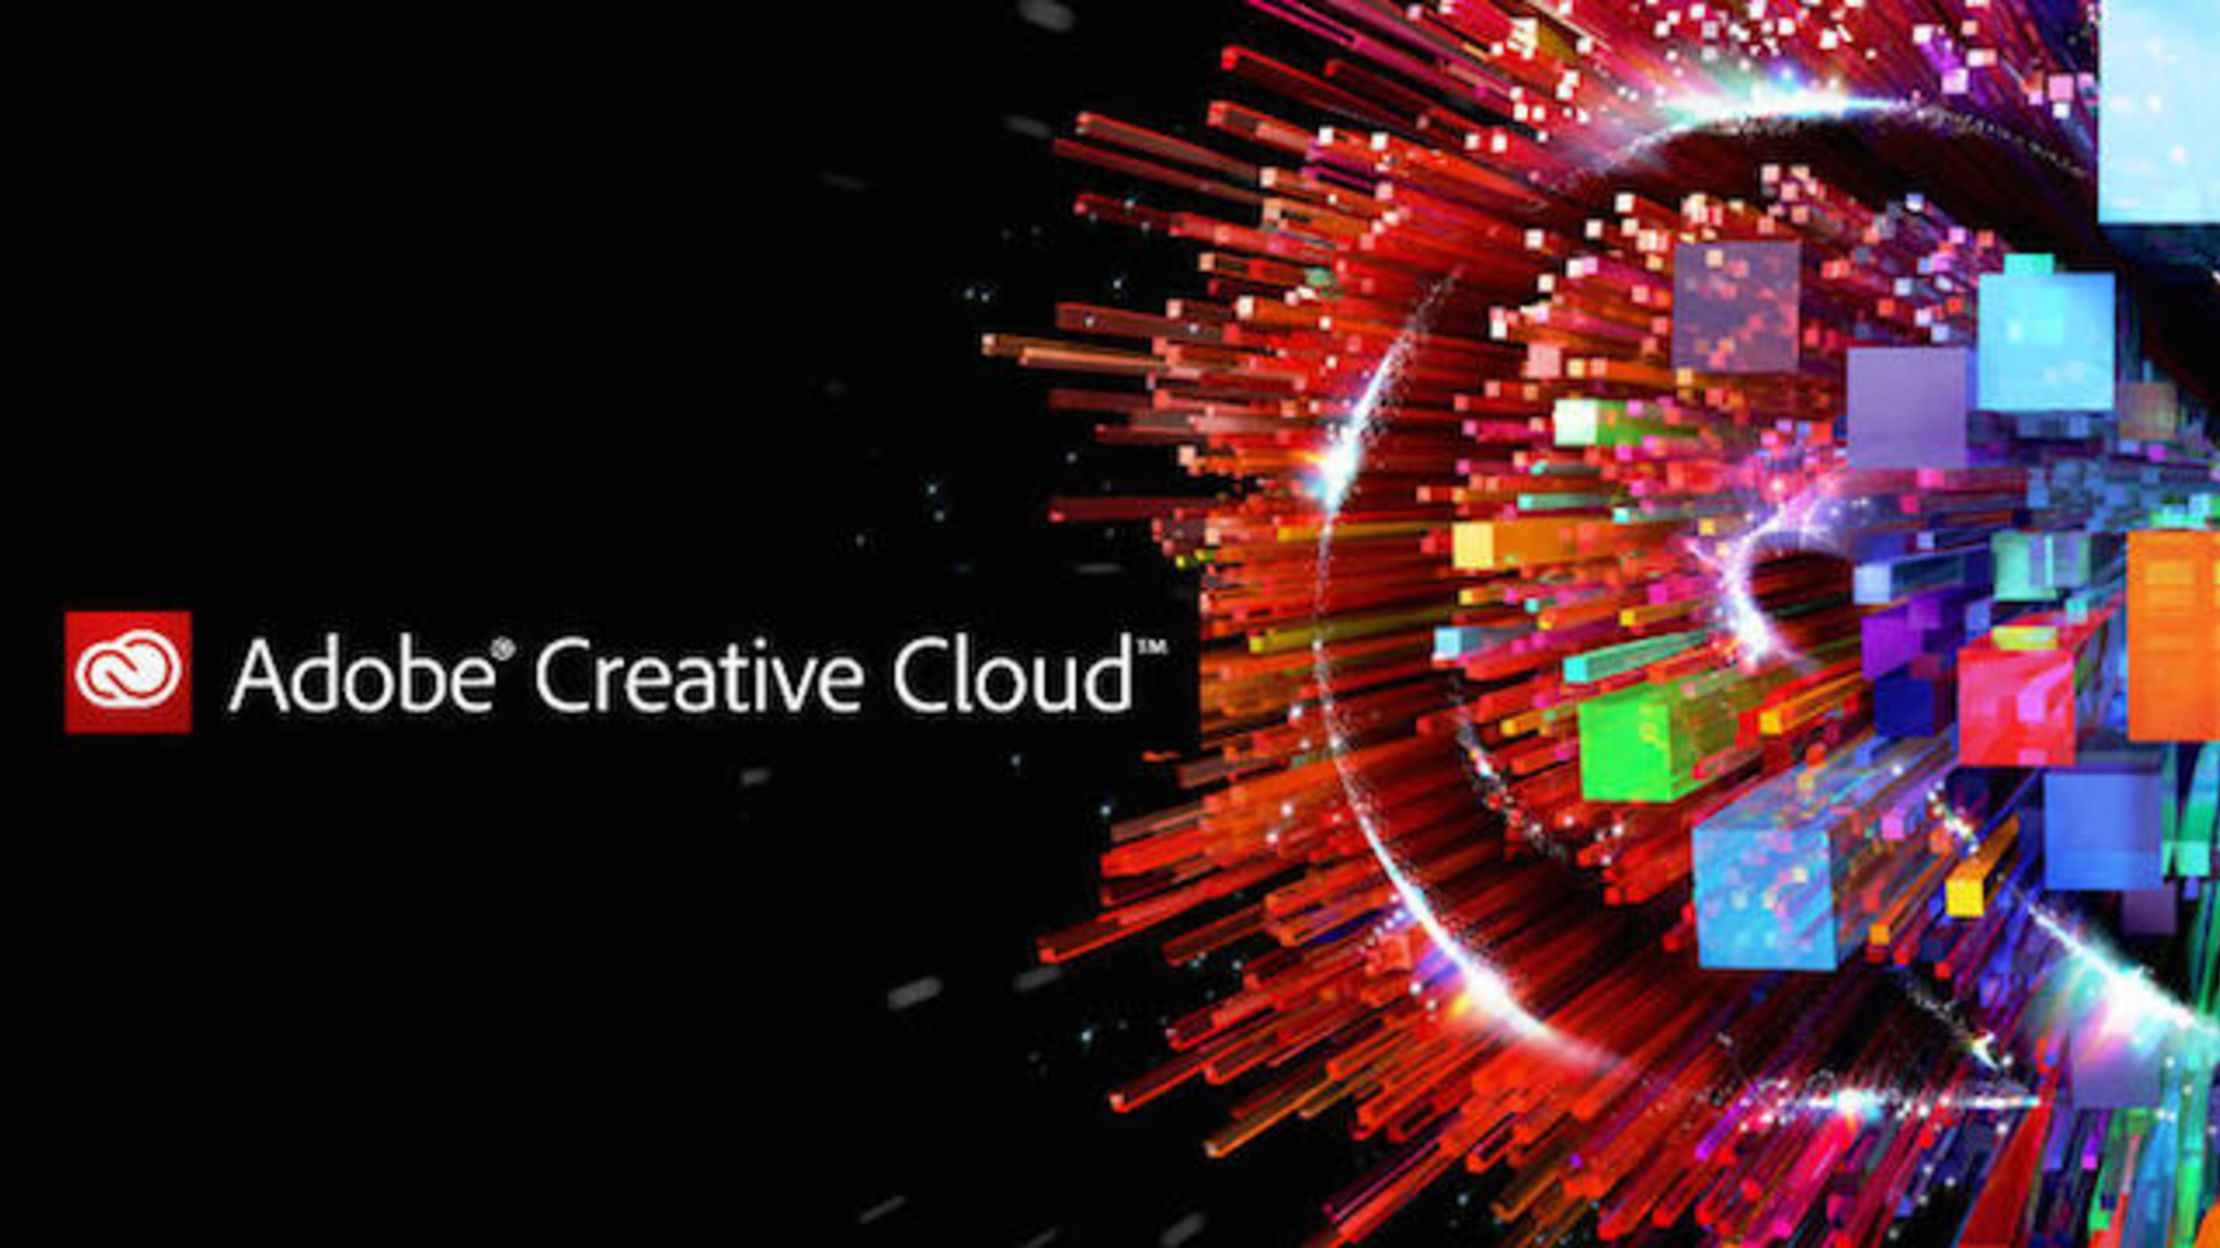 Get creative with the suite of tools available in the Adobe Creative Cloud.